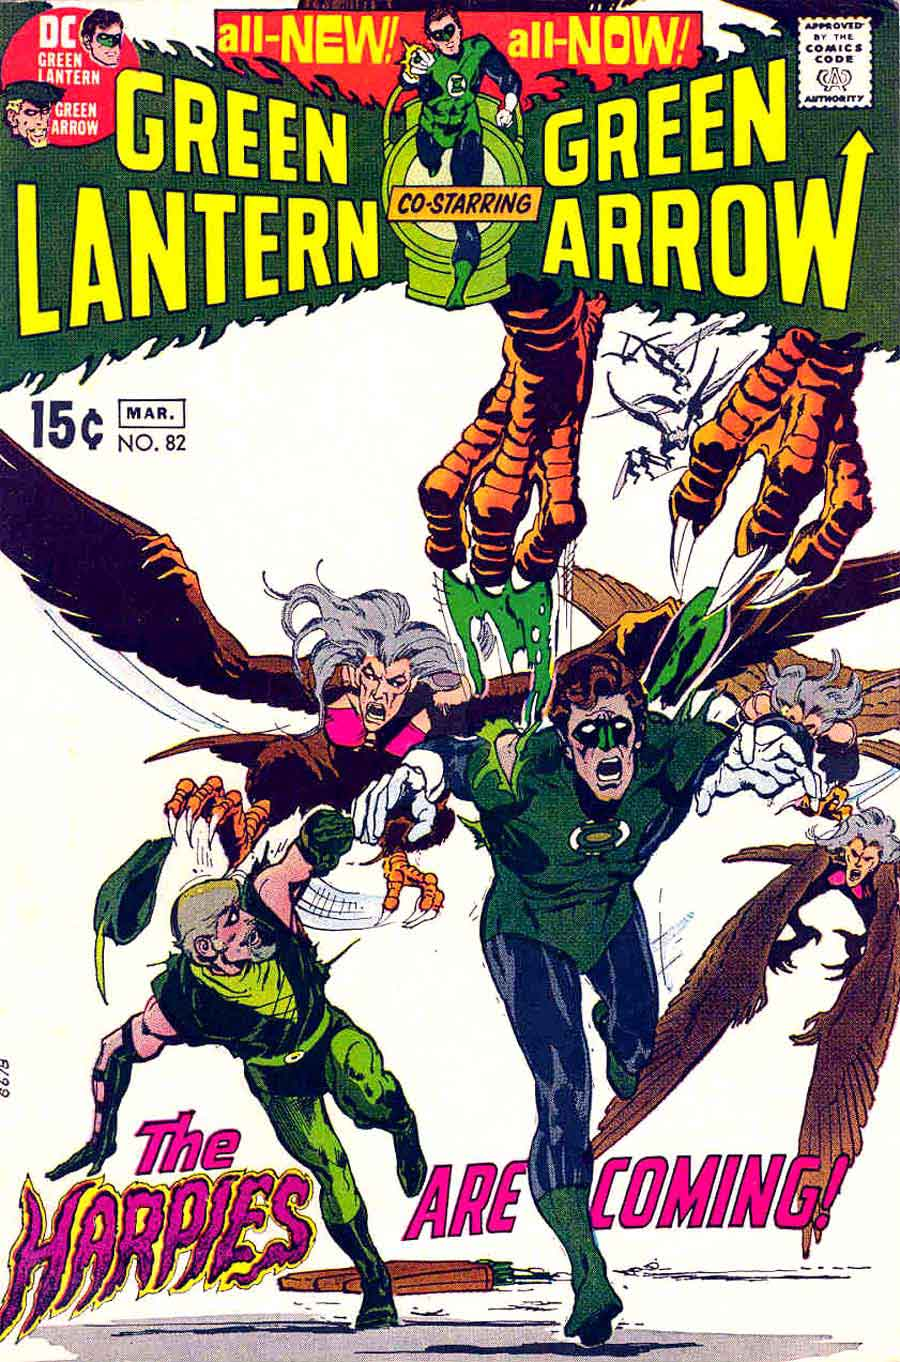 Green Lantern Green Arrow #82 dc comic book cover art by Neal Adams